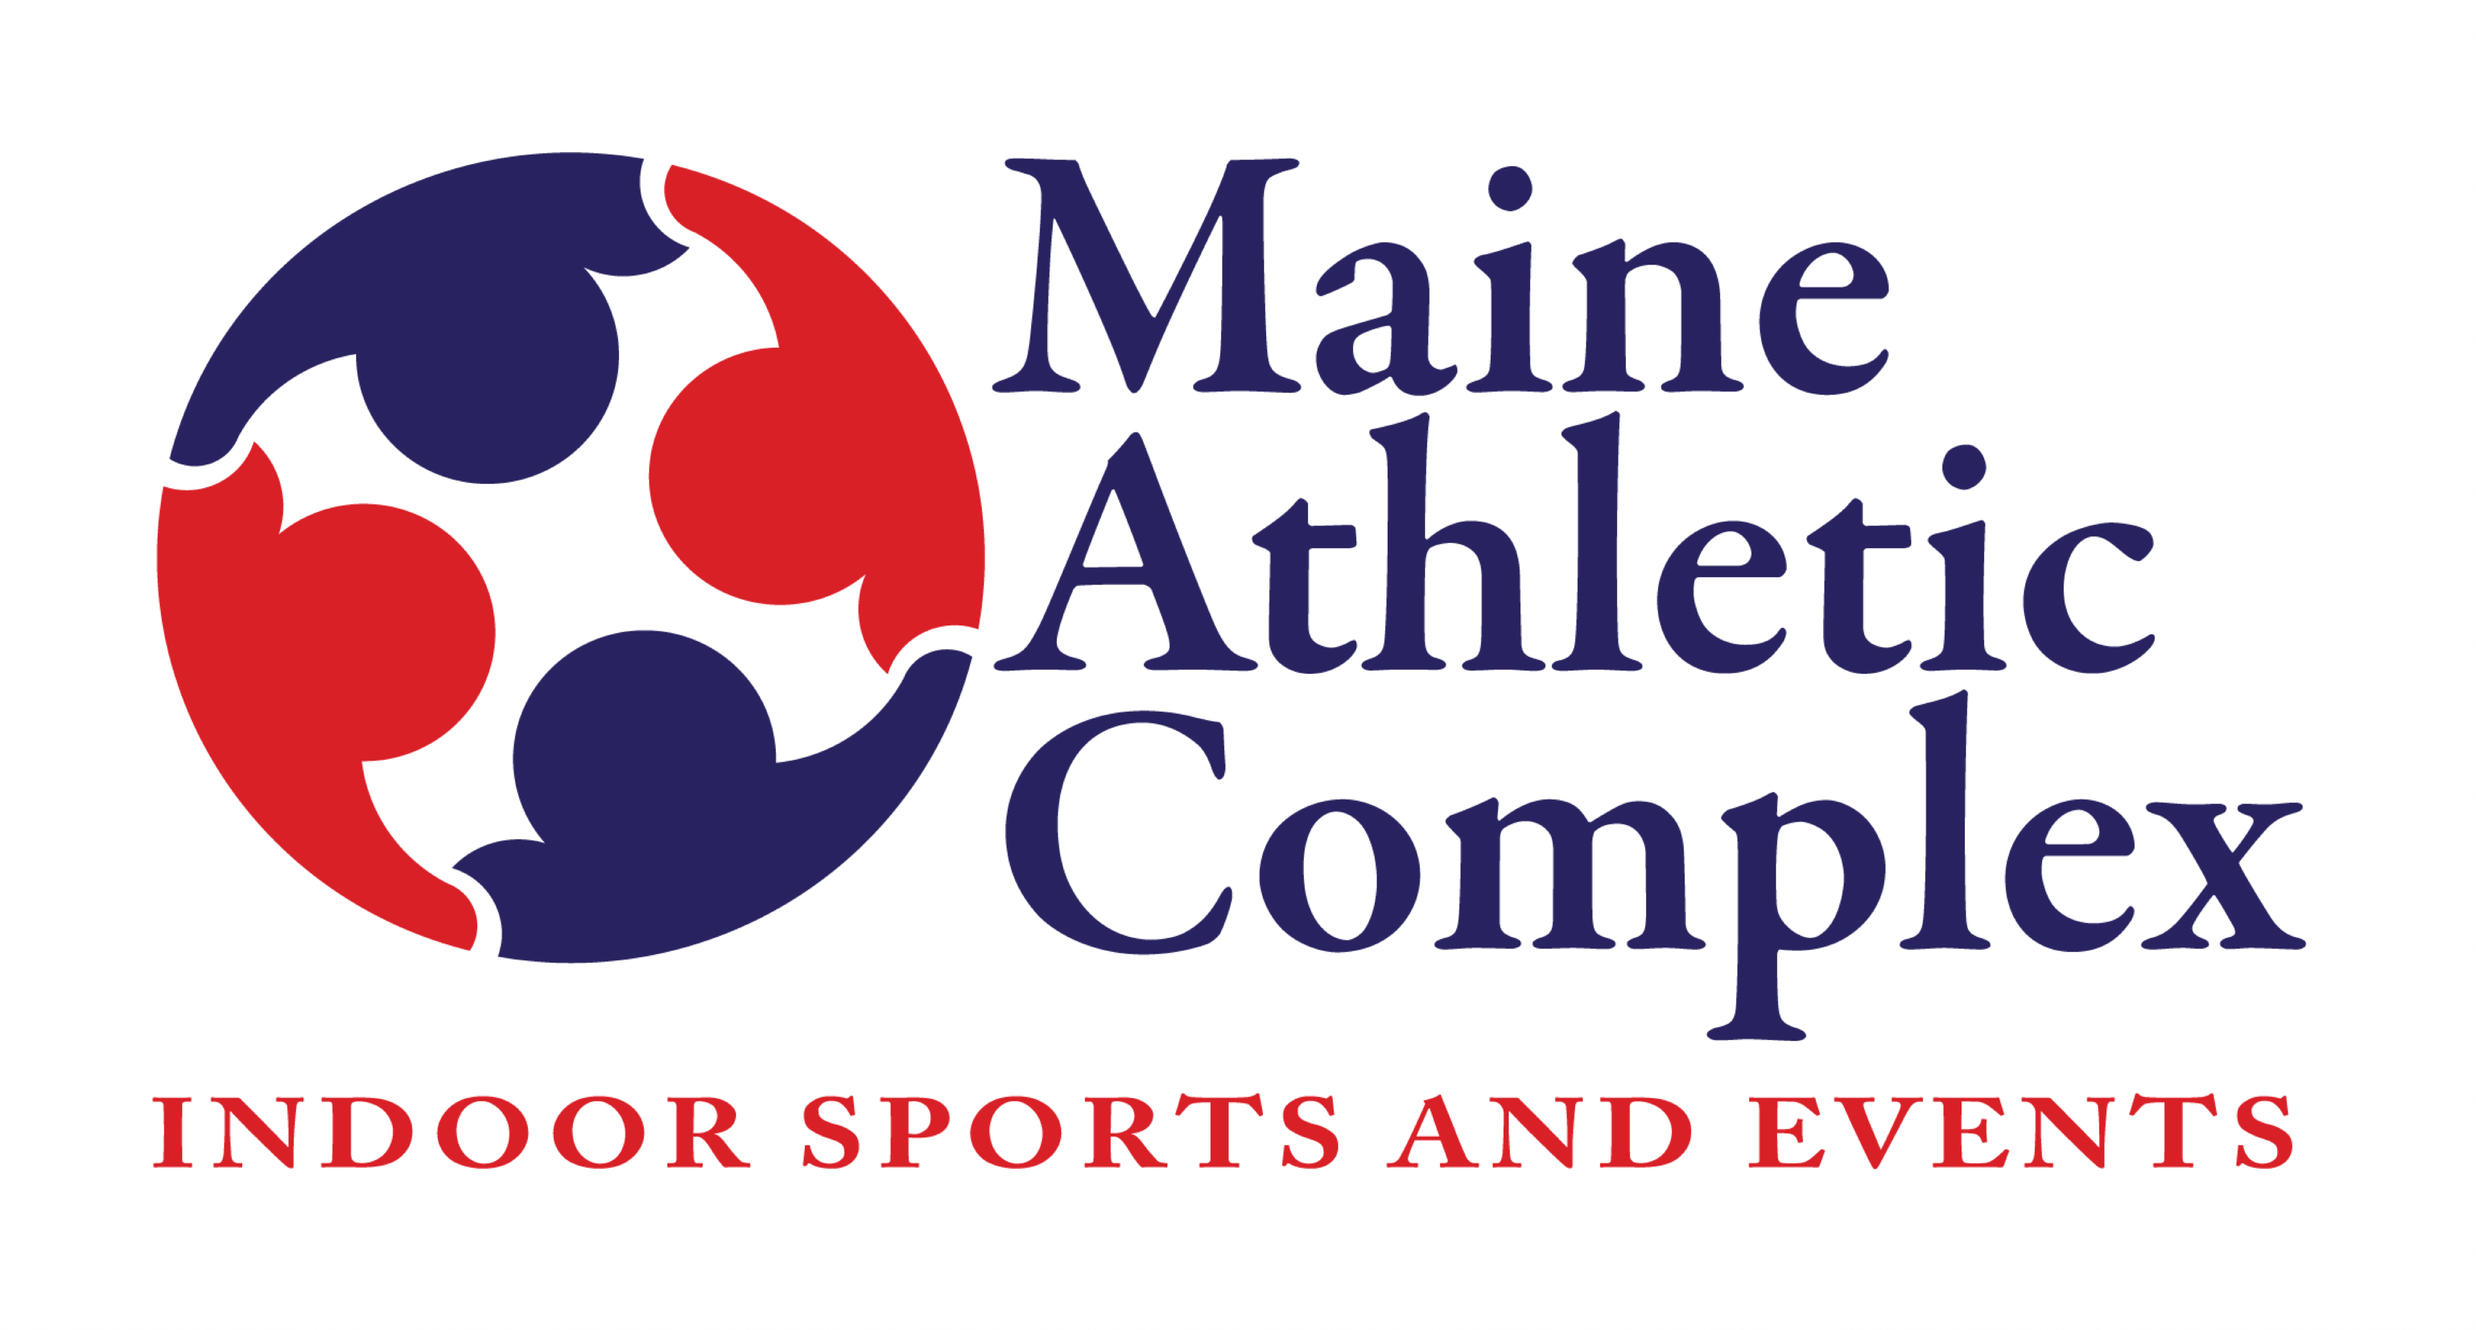 Gym clipart sport complex. Home maine athletic